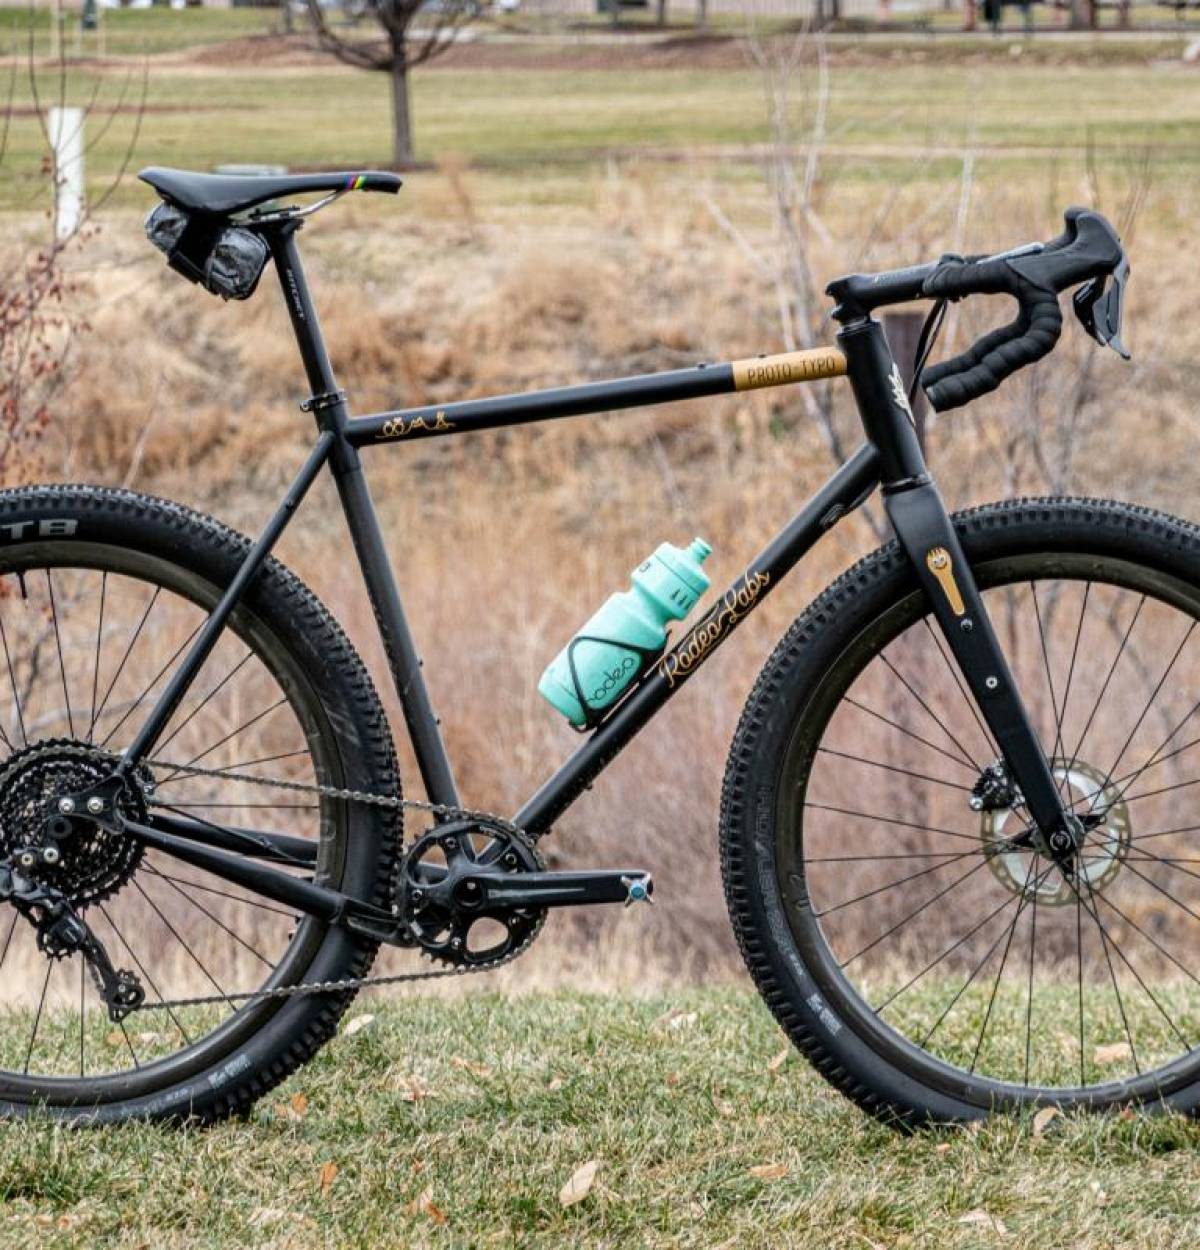 A gravel bicycle with absurdly large tires. To show the limits of tire size